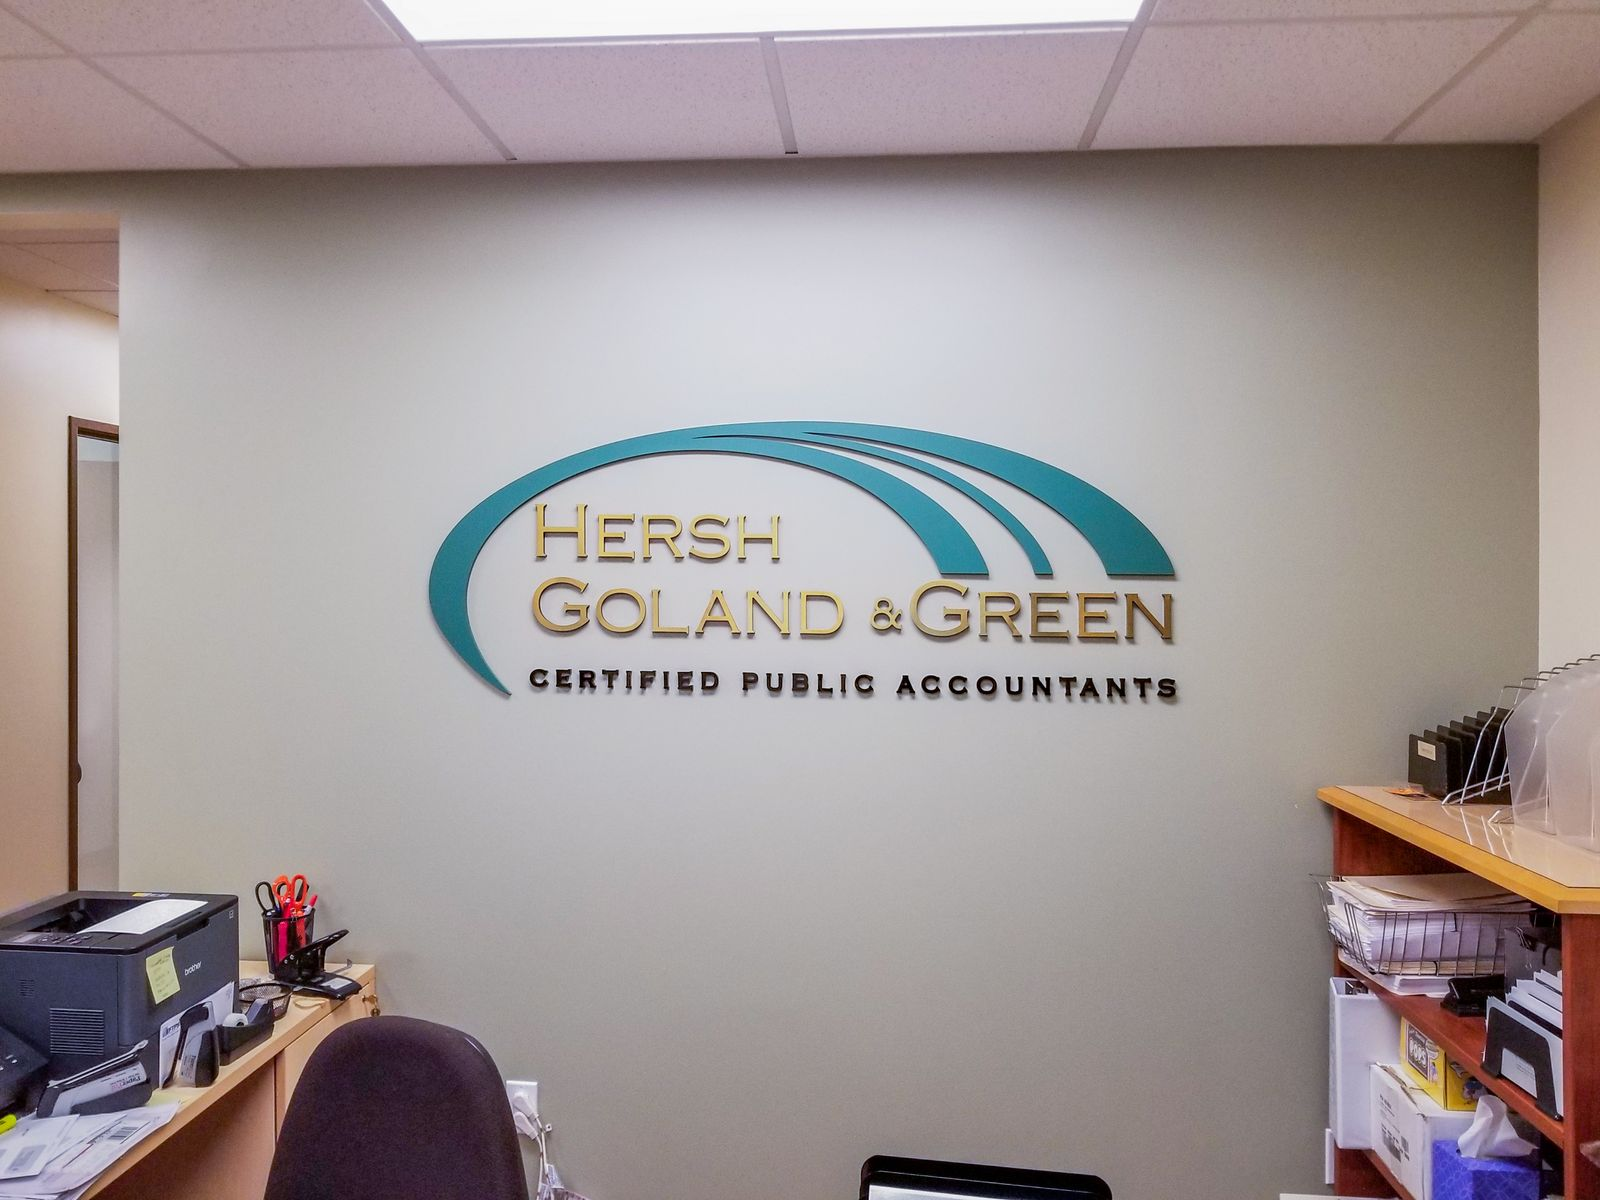 Hersh Goland & Green accountants' 3d acrylic letters and logo for lobby branding